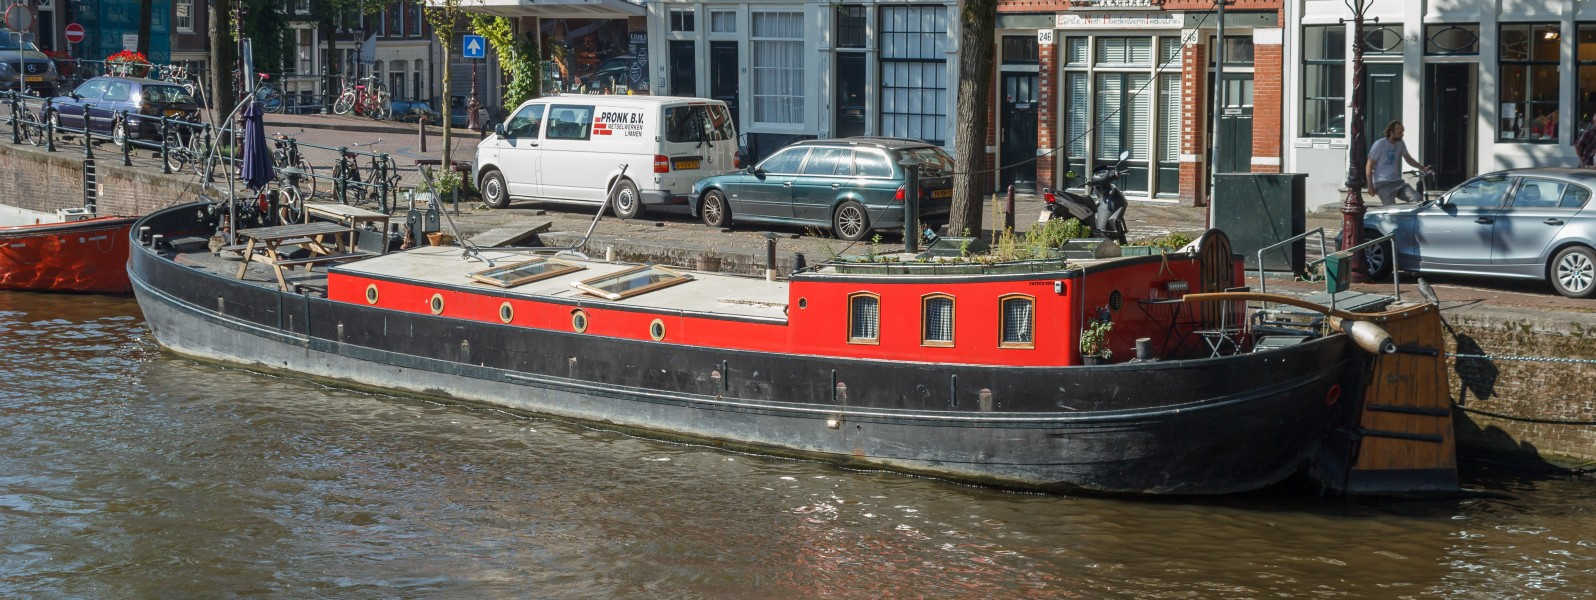 Houseboat at Prinsengracht 246 2016-09-13